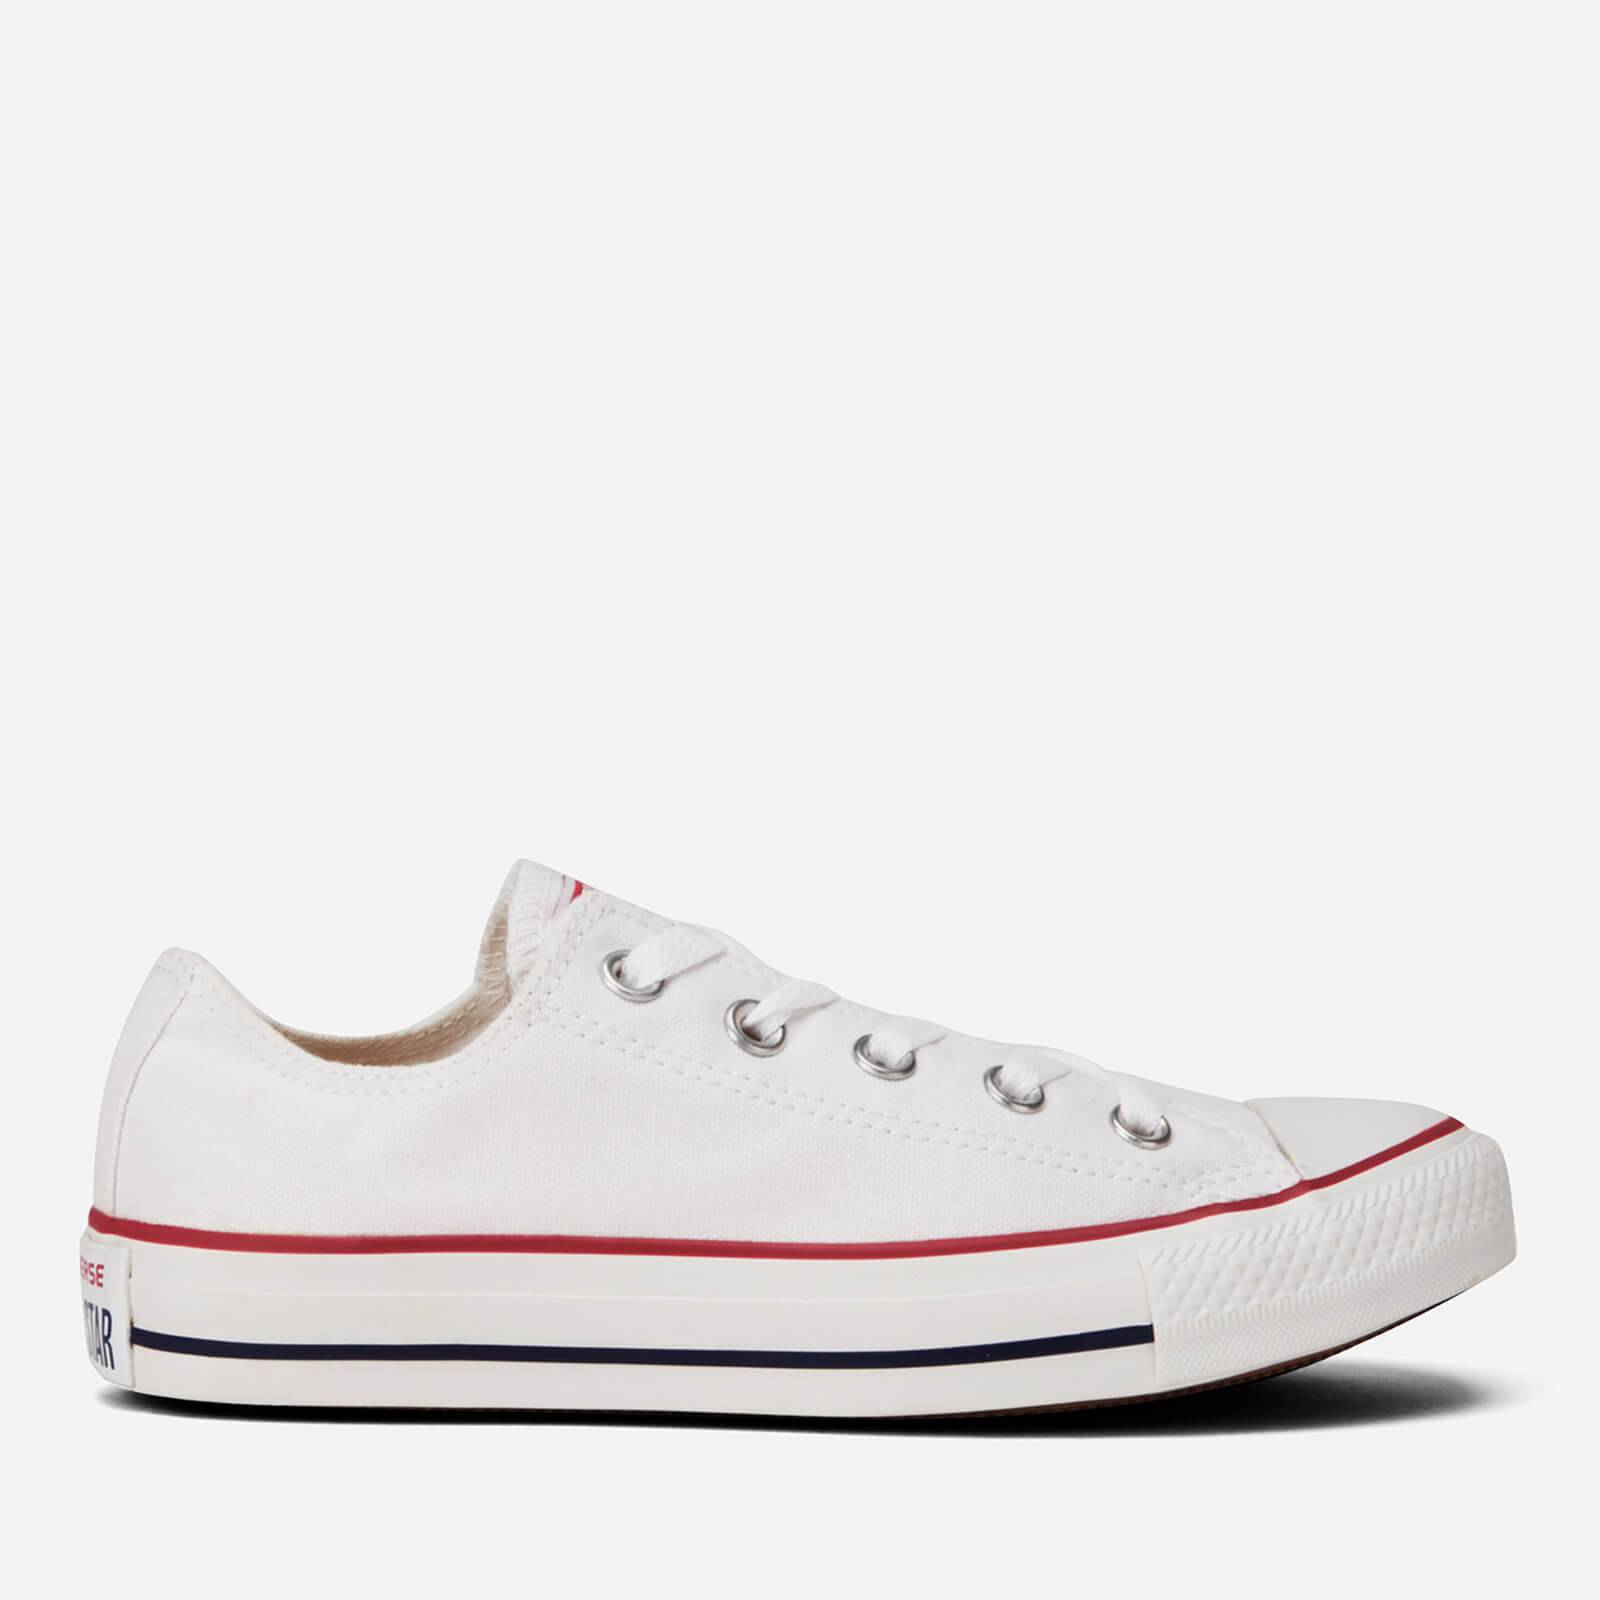 Converse Chuck Taylor All Star Ox Canvas Trainers - Optical White - UK 8